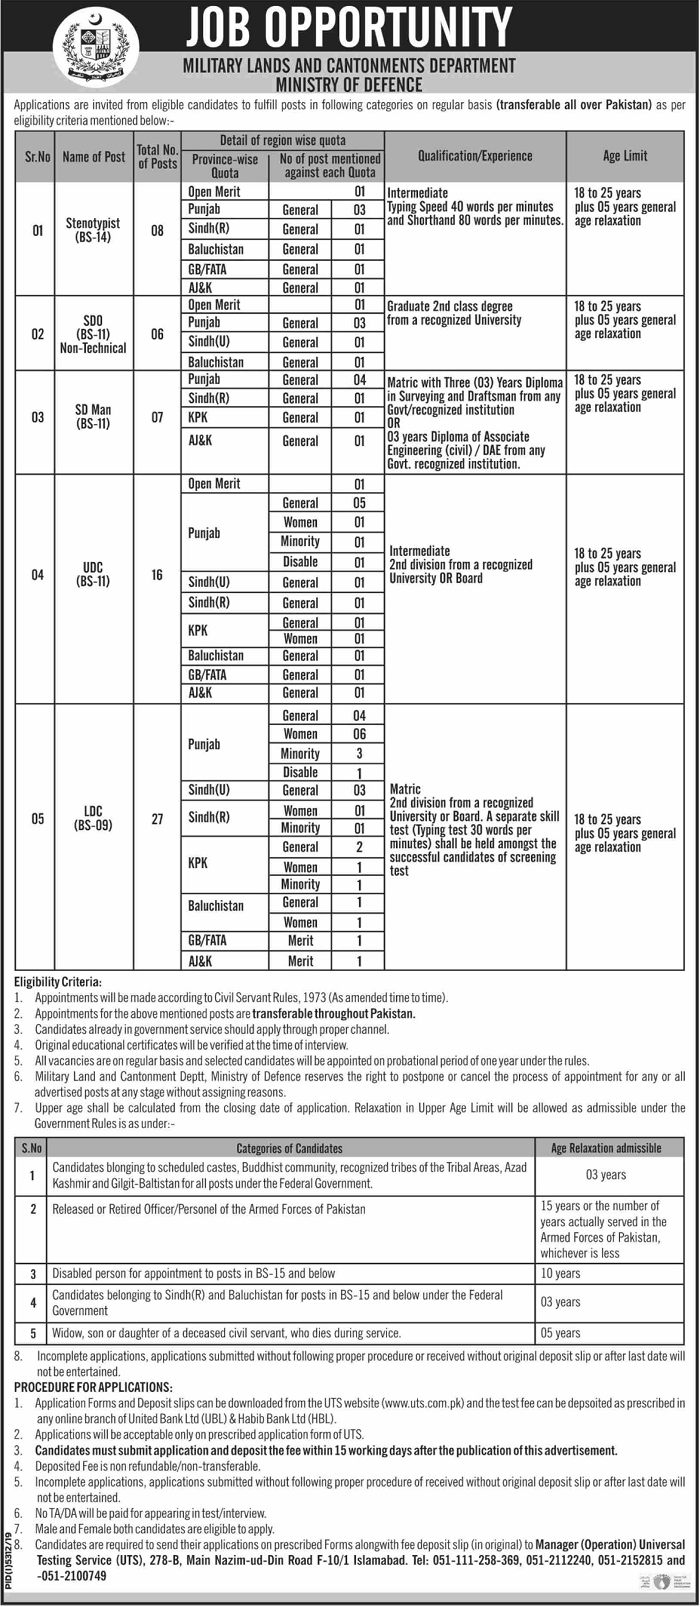 Military Lands Cantonments Department Jobs UTS Roll No Slip